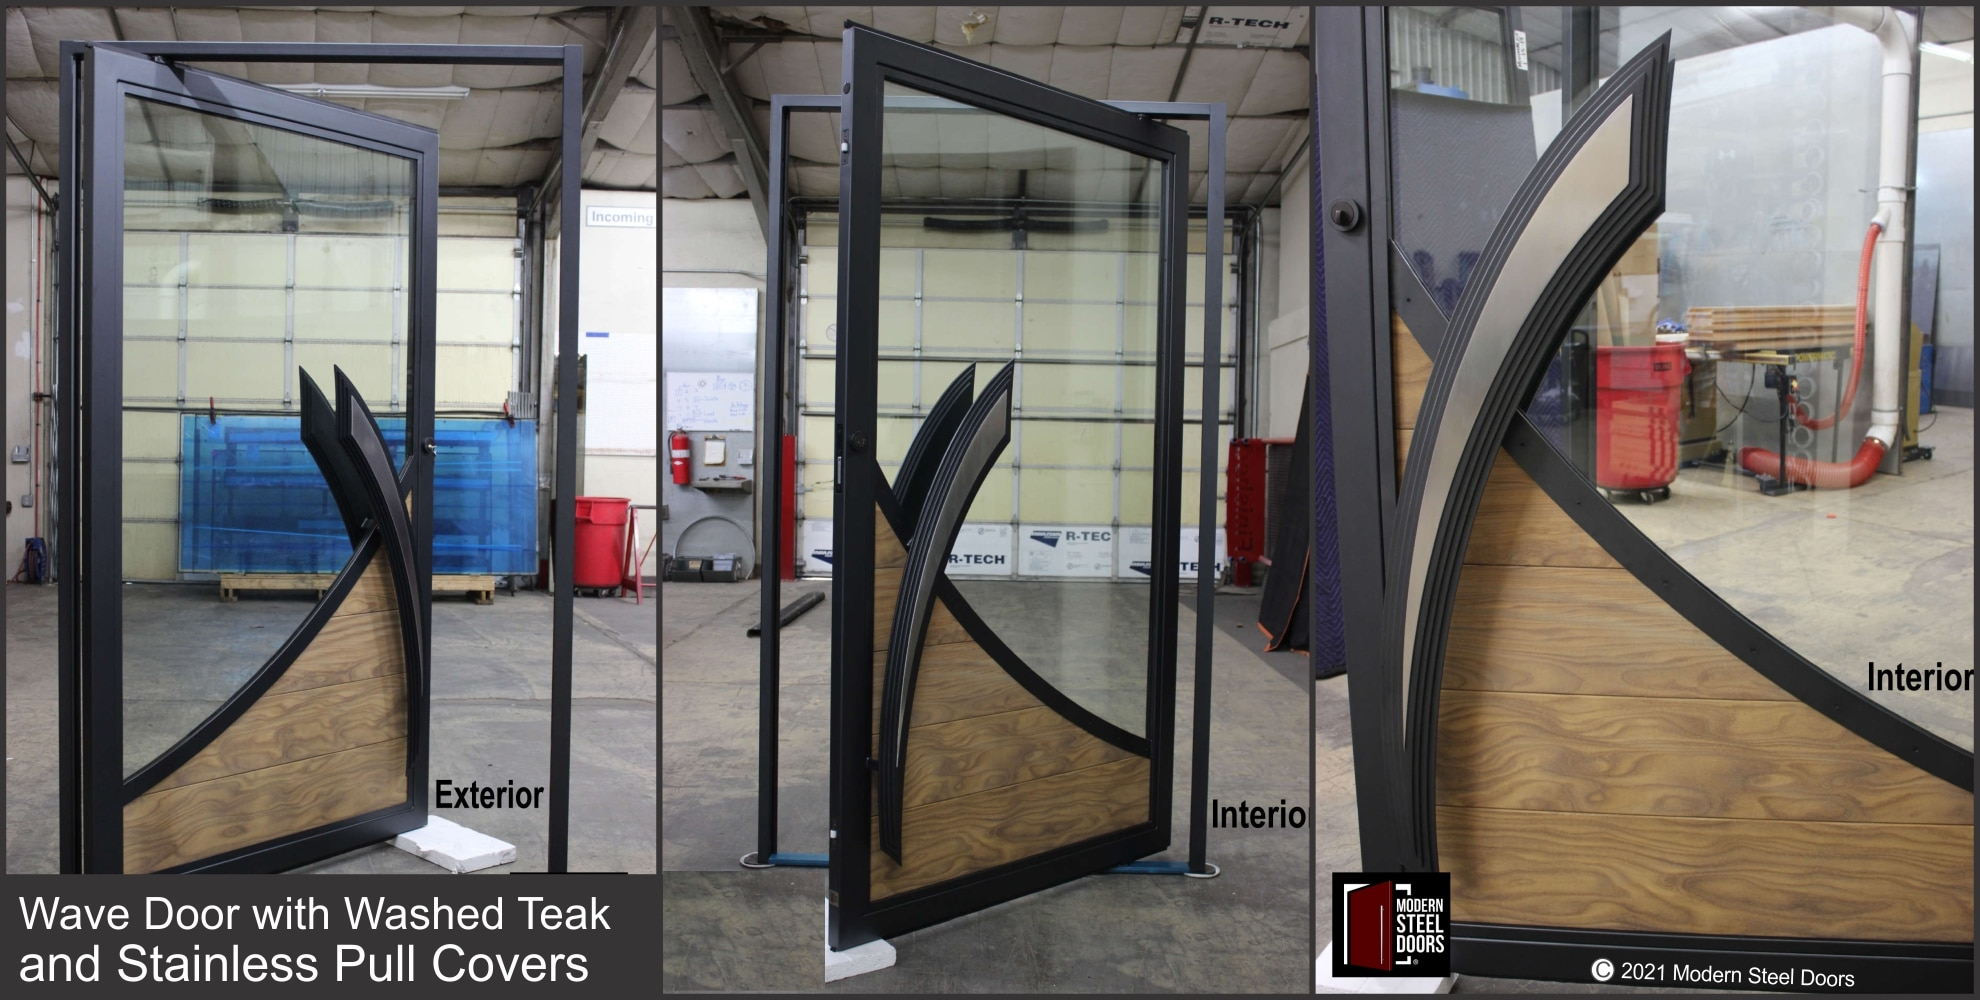 WAVE DOOR WITH WASHED TEAK WOOD AND STAINLESS PULL COVERS